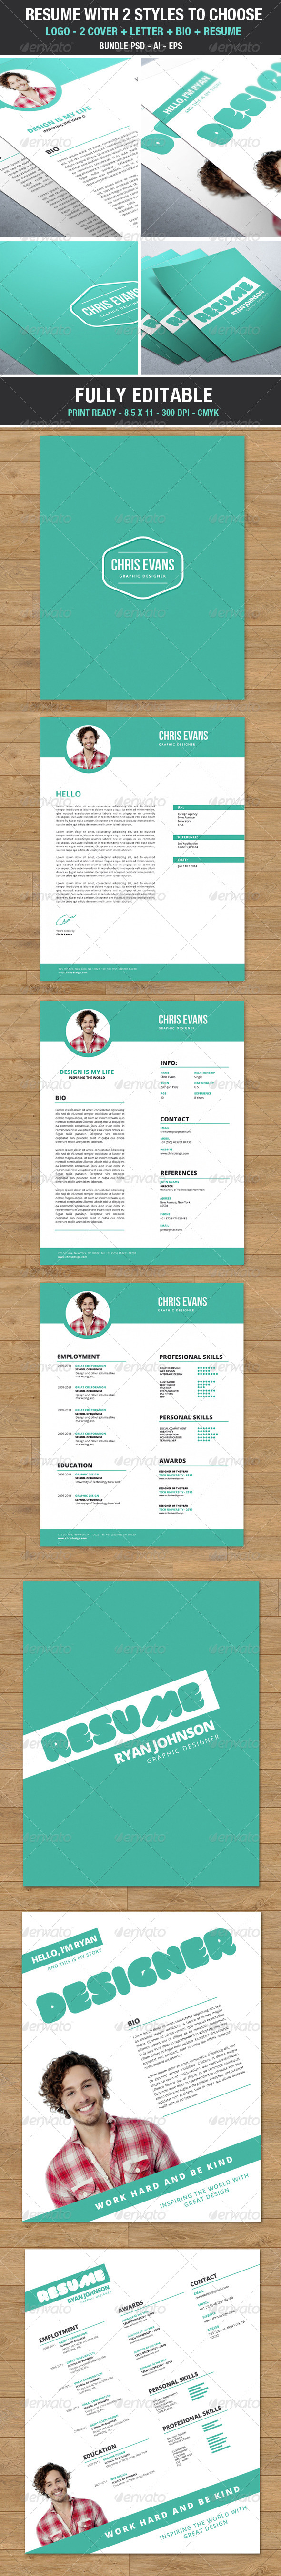 GraphicRiver Clean Modern Resume 2 styles to choose Bundle 6879321